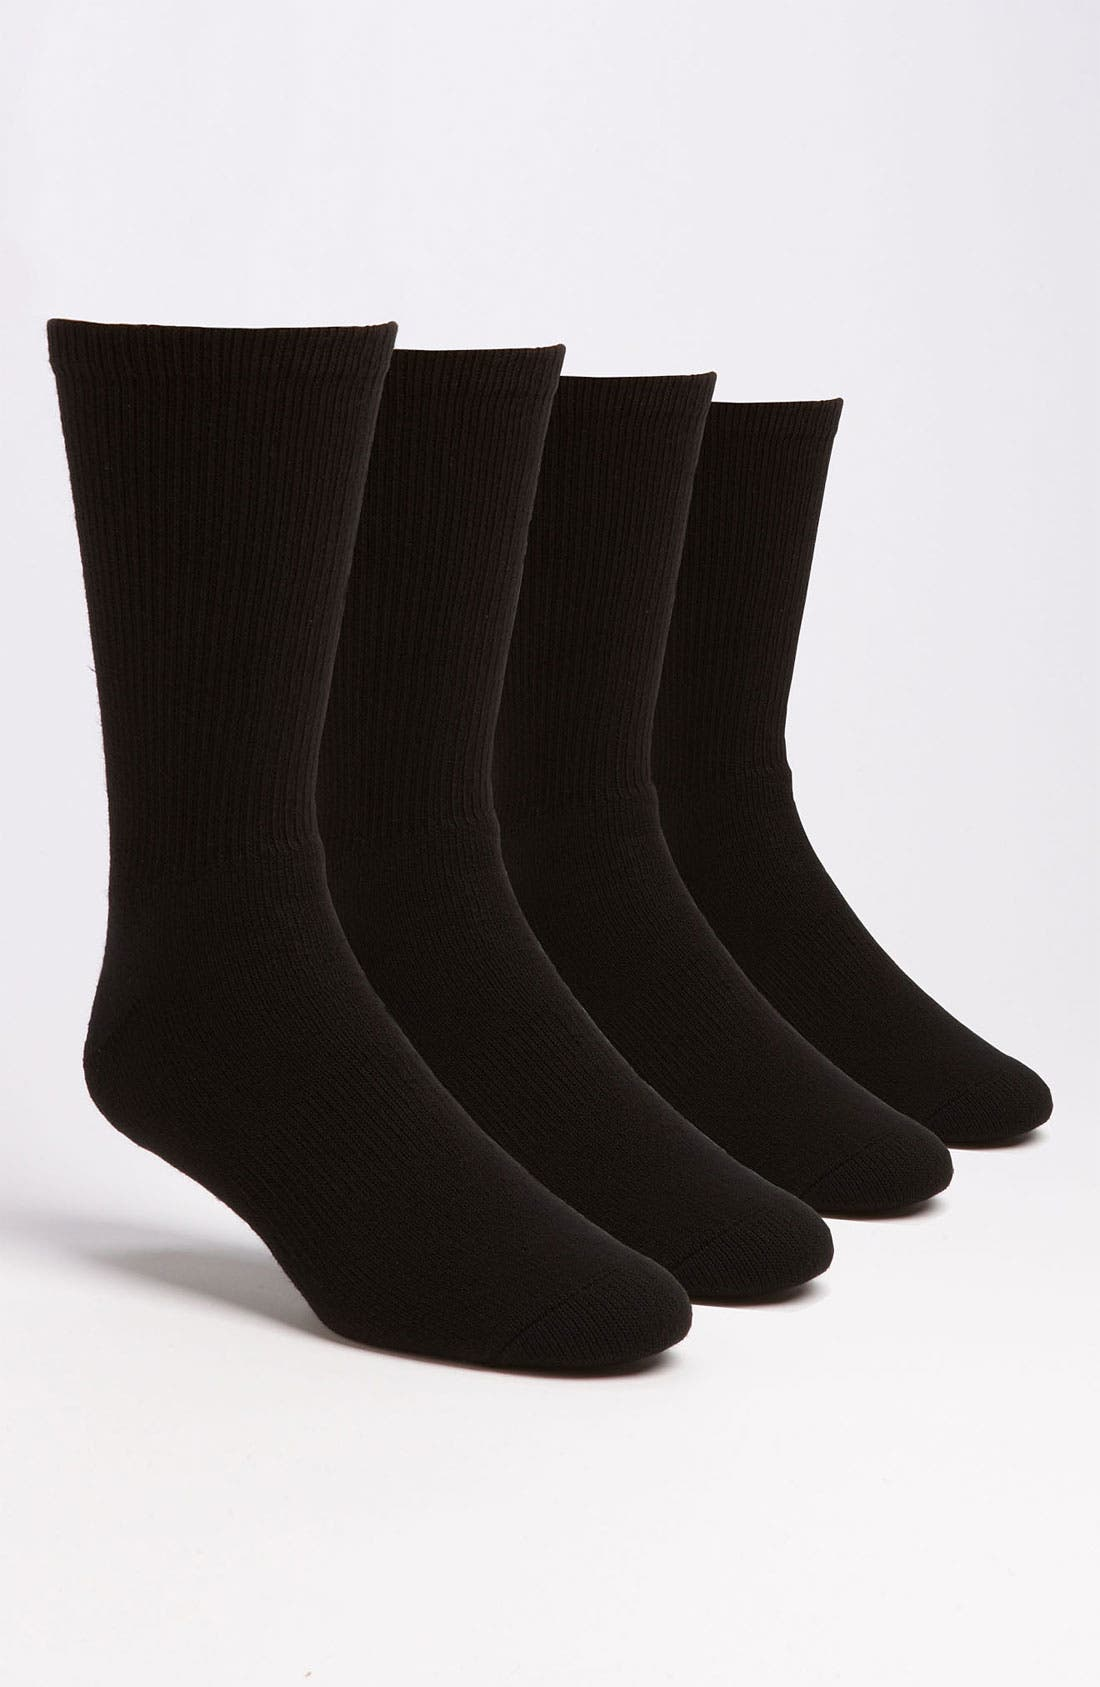 Main Image - Nordstrom Men's Shop Crew Socks (4-Pack)